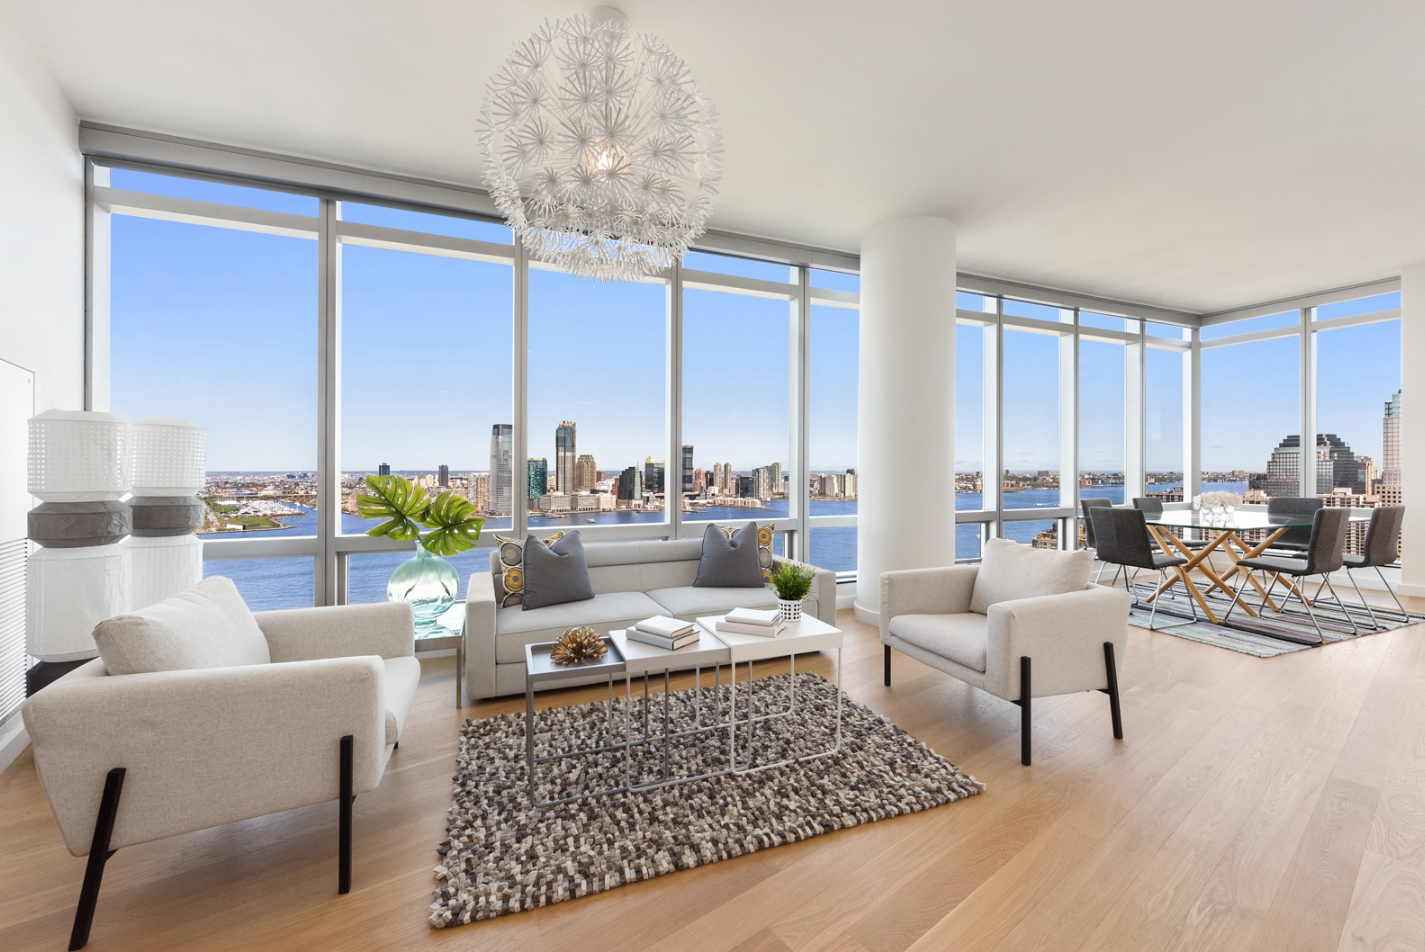 10 WEST STREET PH1A - $3,695,0003 Bedrooms3 Bathrooms2,000 SQFT